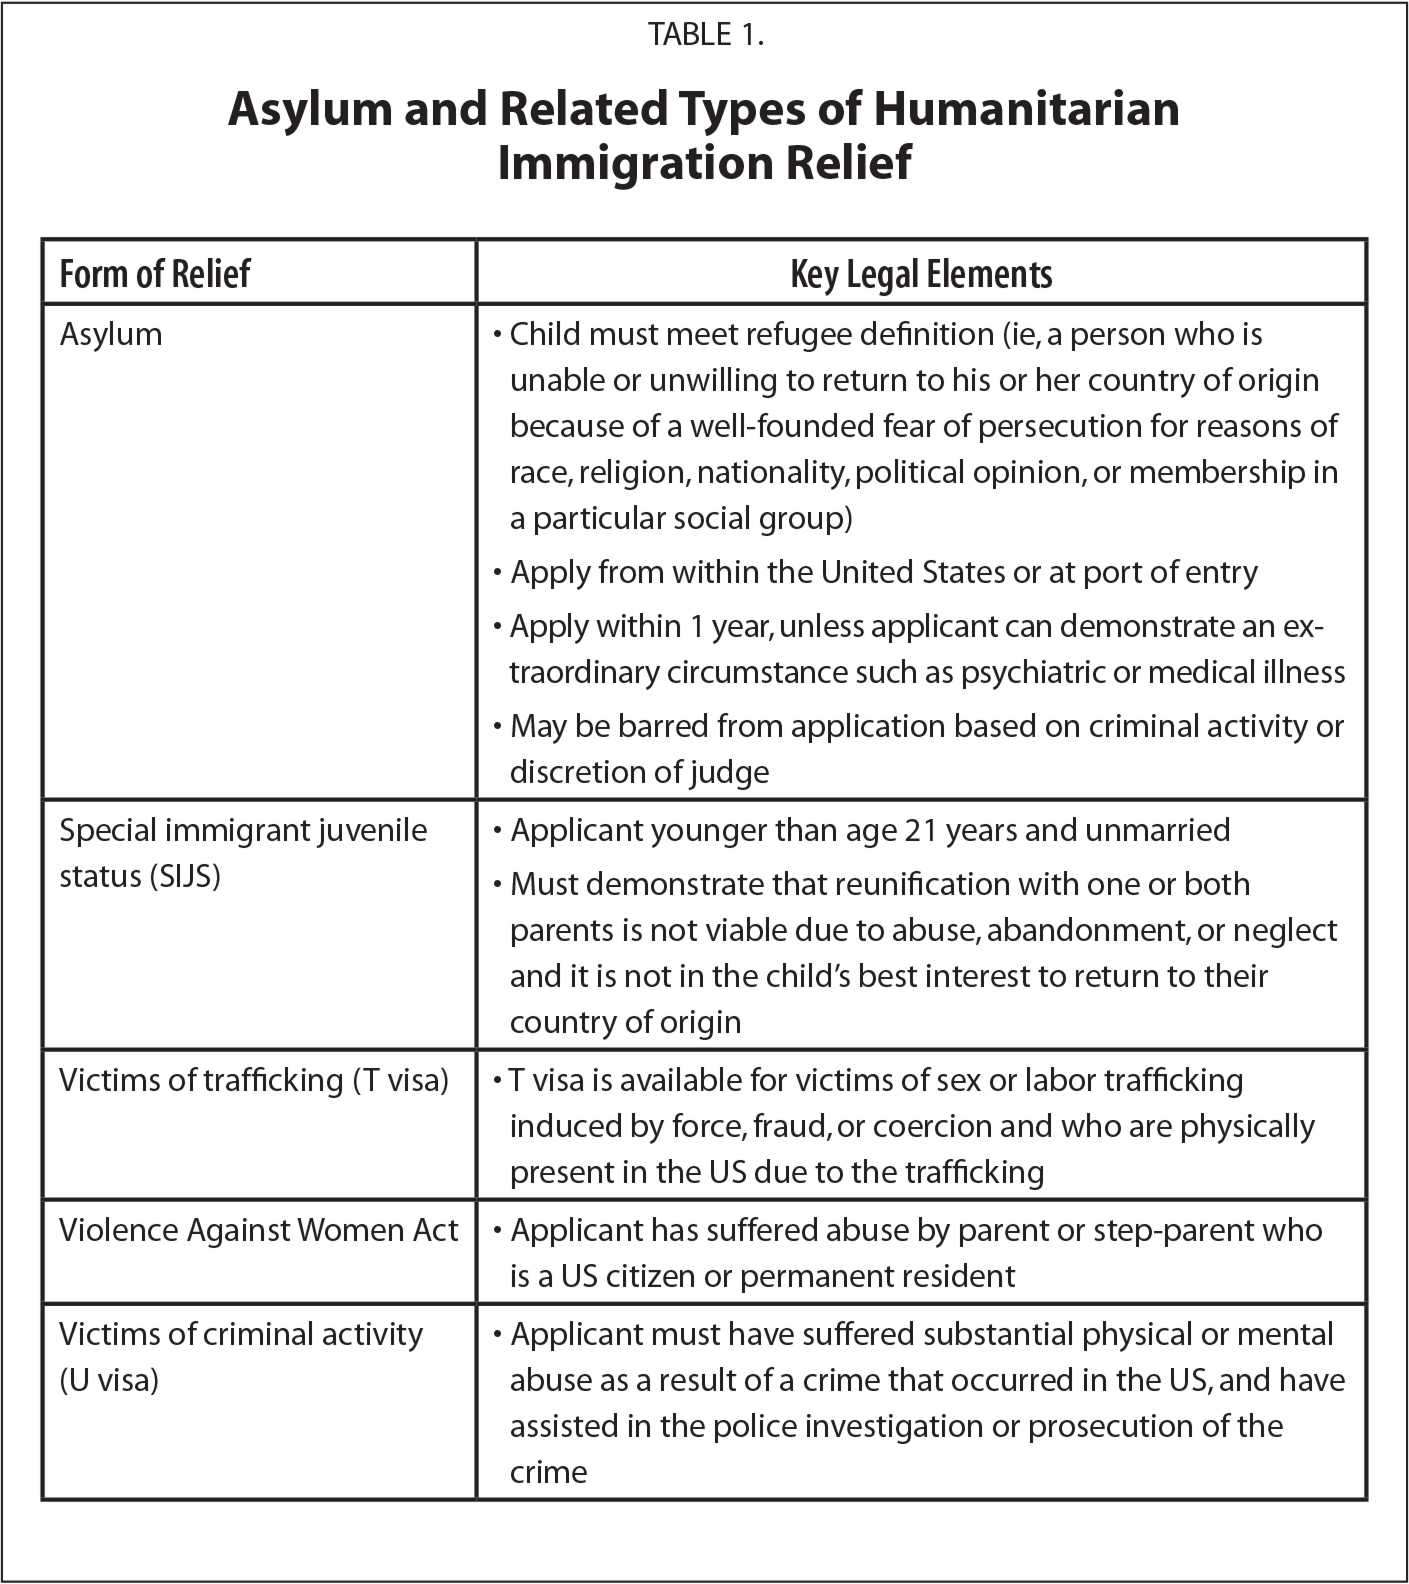 Asylum and Related Types of Humanitarian Immigration Relief